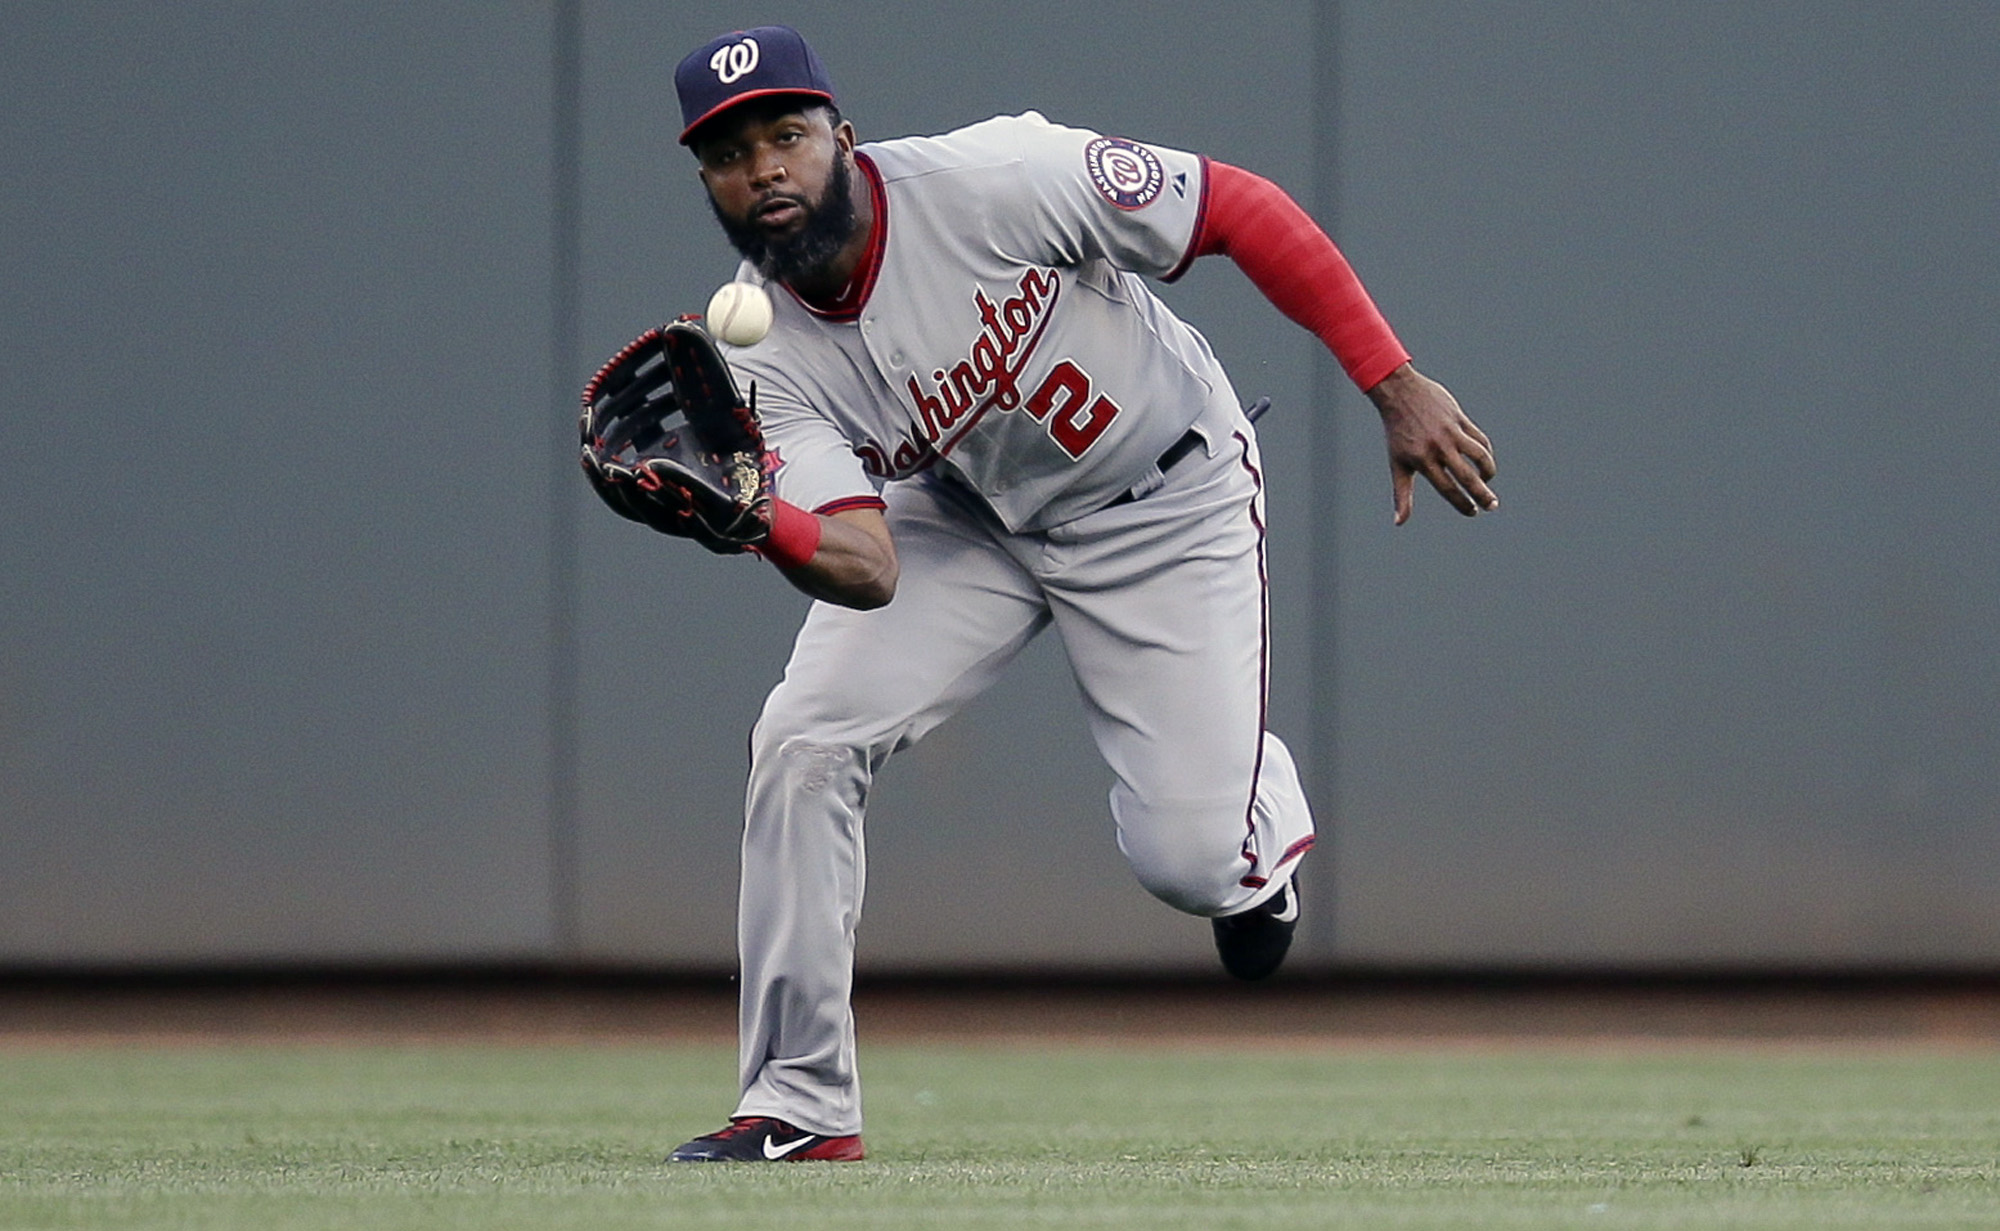 Washington Nationals center fielder Denard Span catches out Cincinnati Reds' Marlon Byrd in the second inning of a baseball game, Friday, May 29, 2015, in Cincinnati. (AP Photo/John Minchillo)